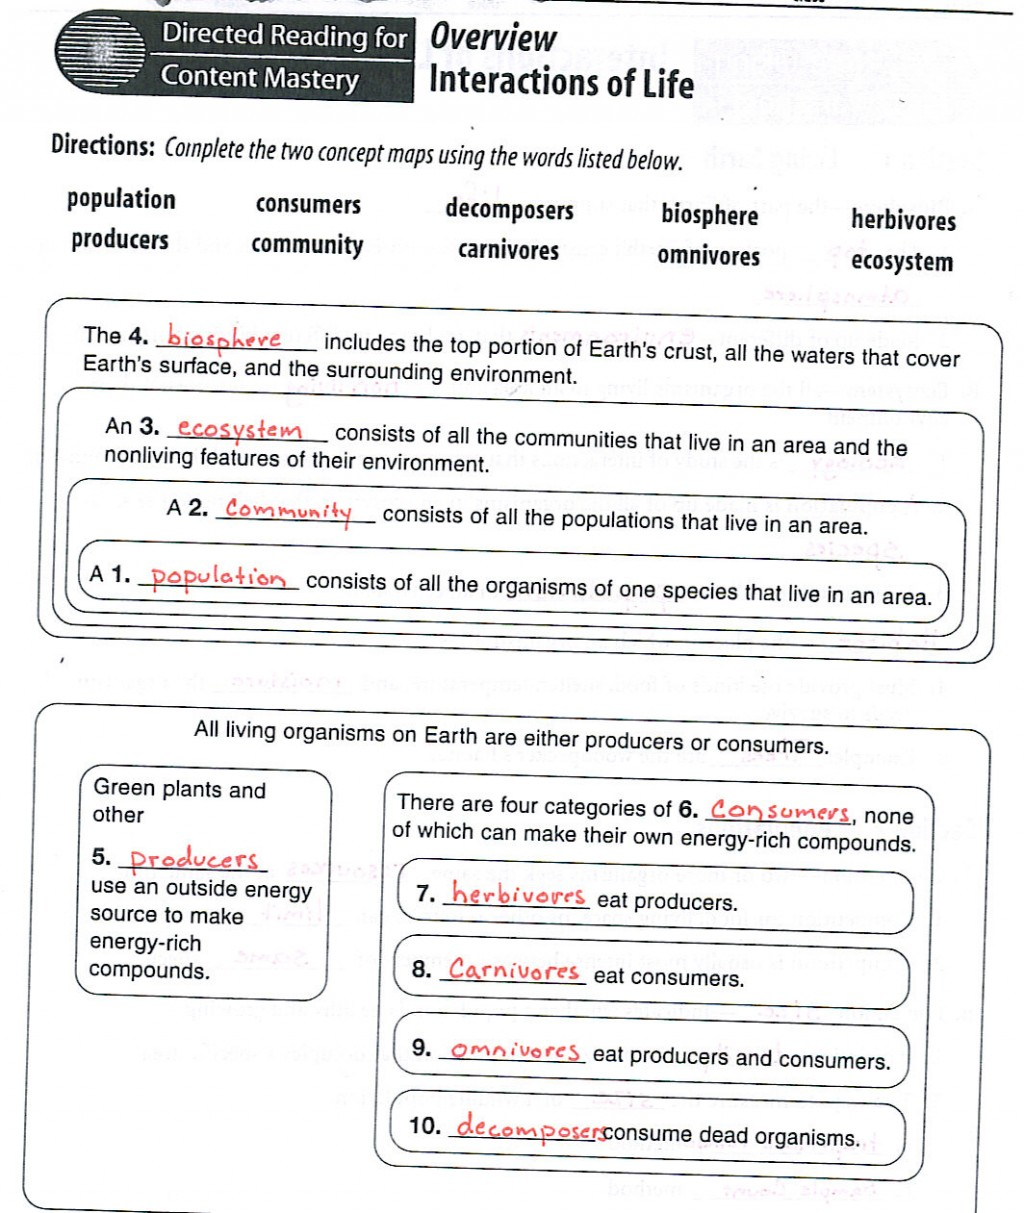 Worksheets Ecology Vocabulary Worksheet worksheet sharebrowse ecology sharebrowse